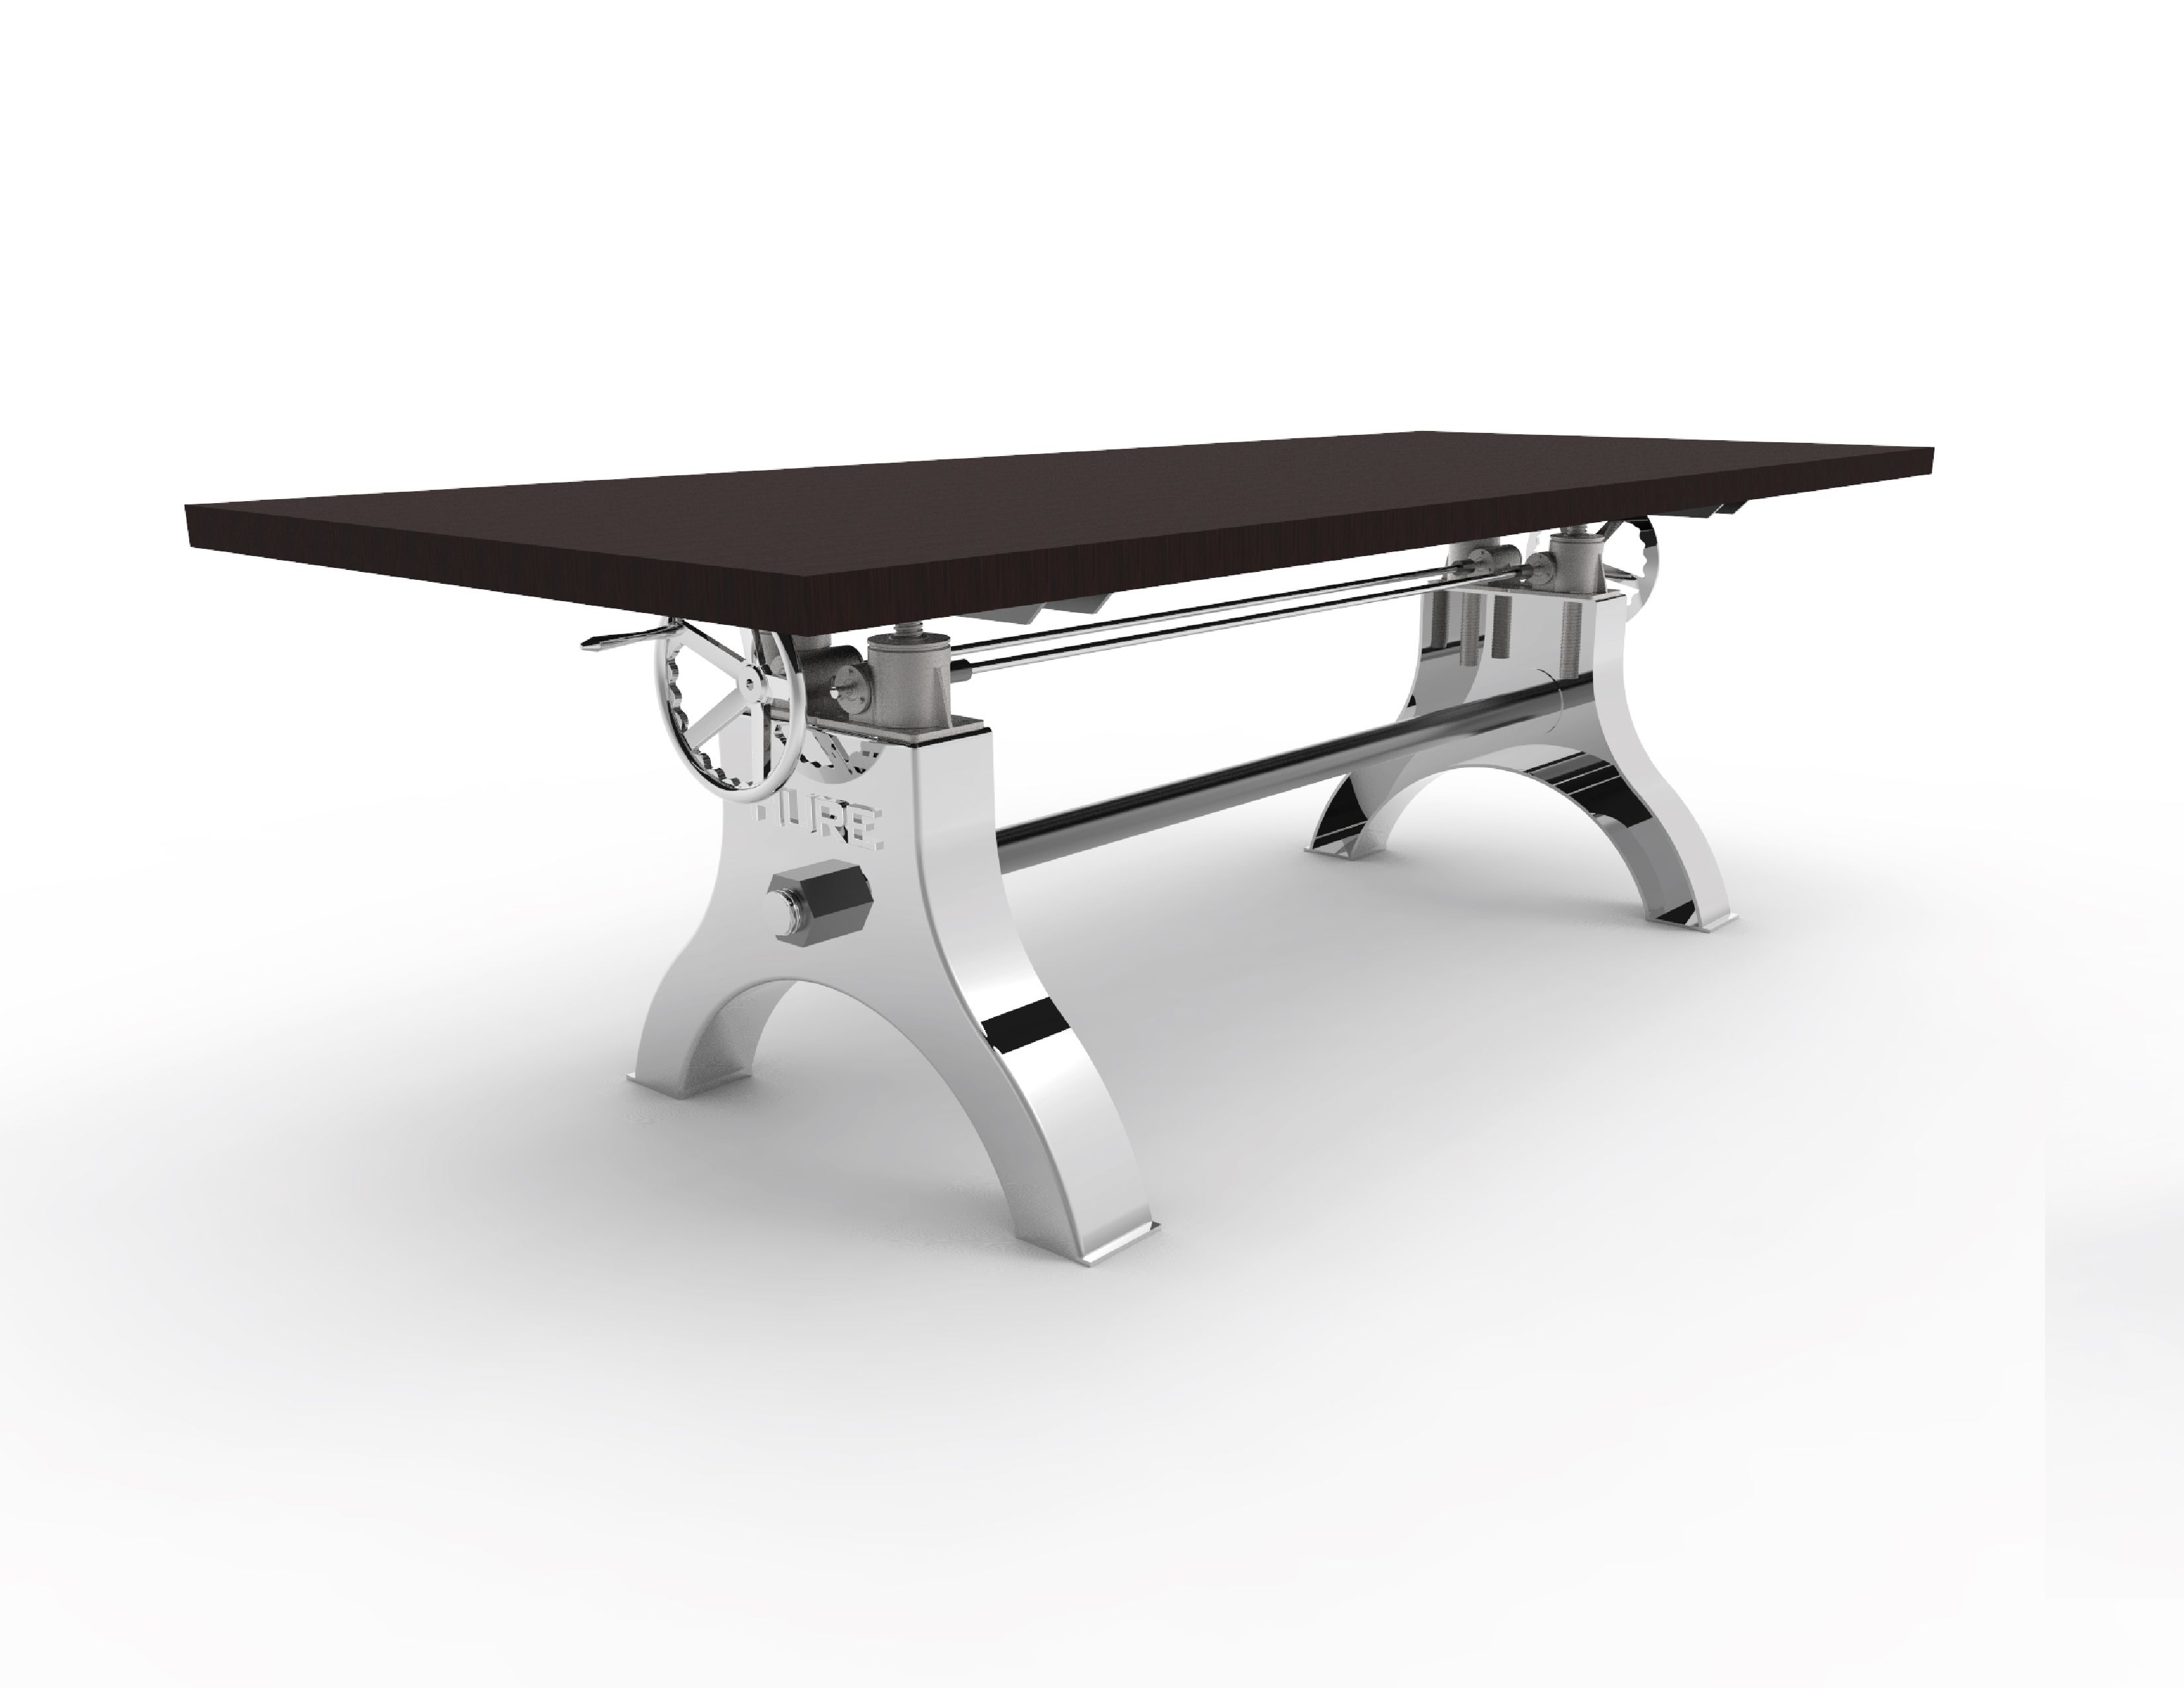 Adjustable industrial dining table - Hure Crank Table Vintage Industrial Furnitureindustrial Deskadjustable